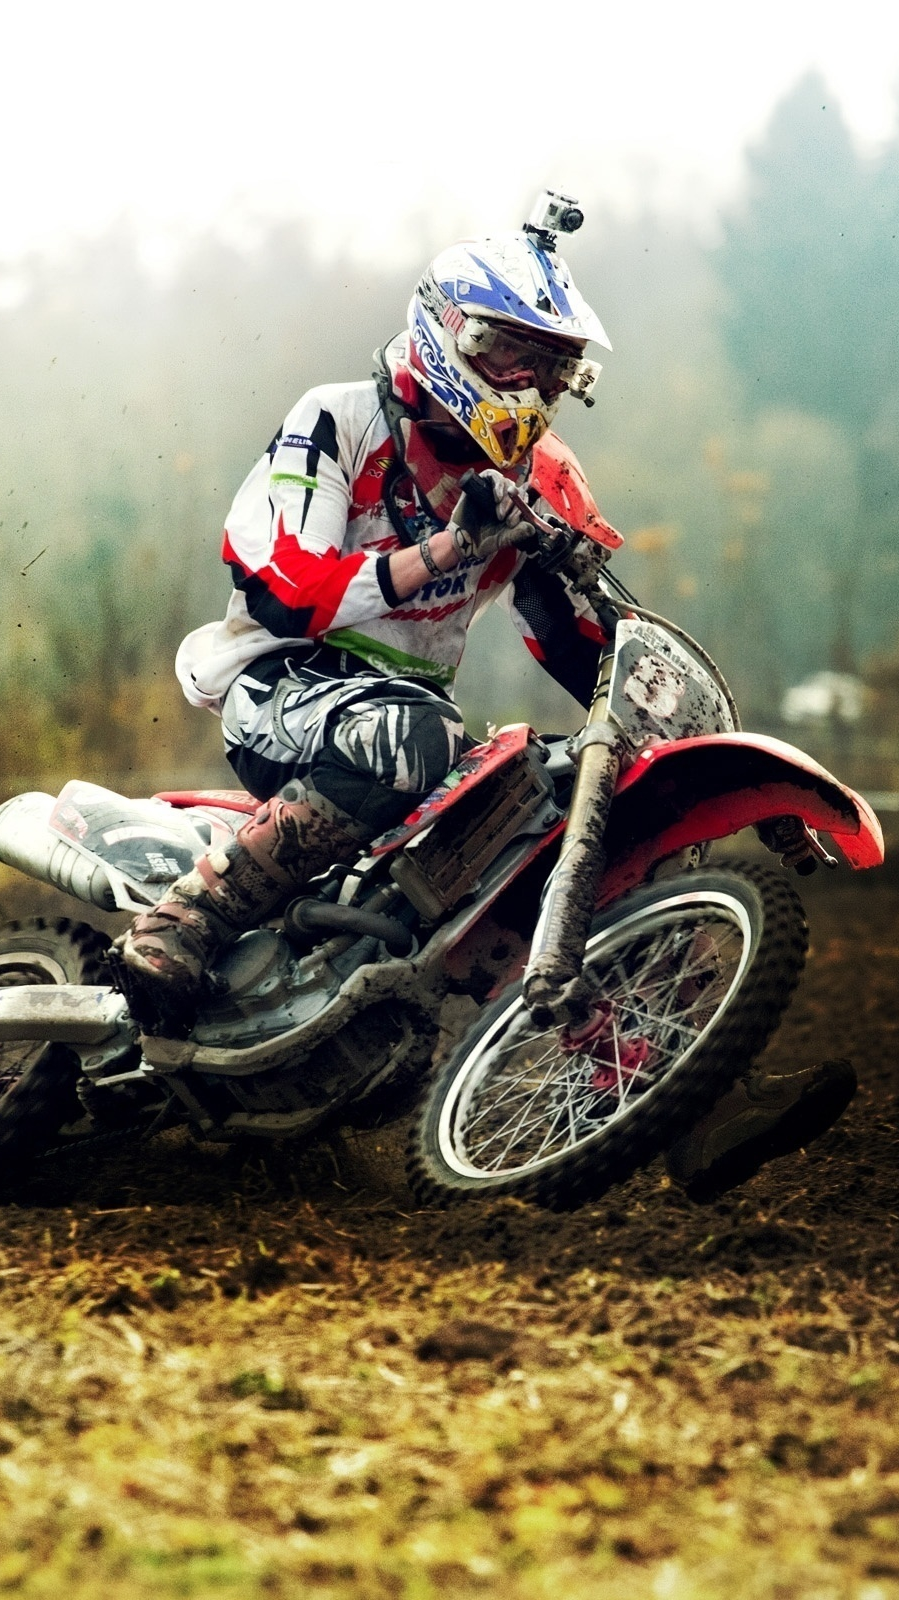 Mud-Motocross-iPhone-Wallpaper - iPhone Wallpapers